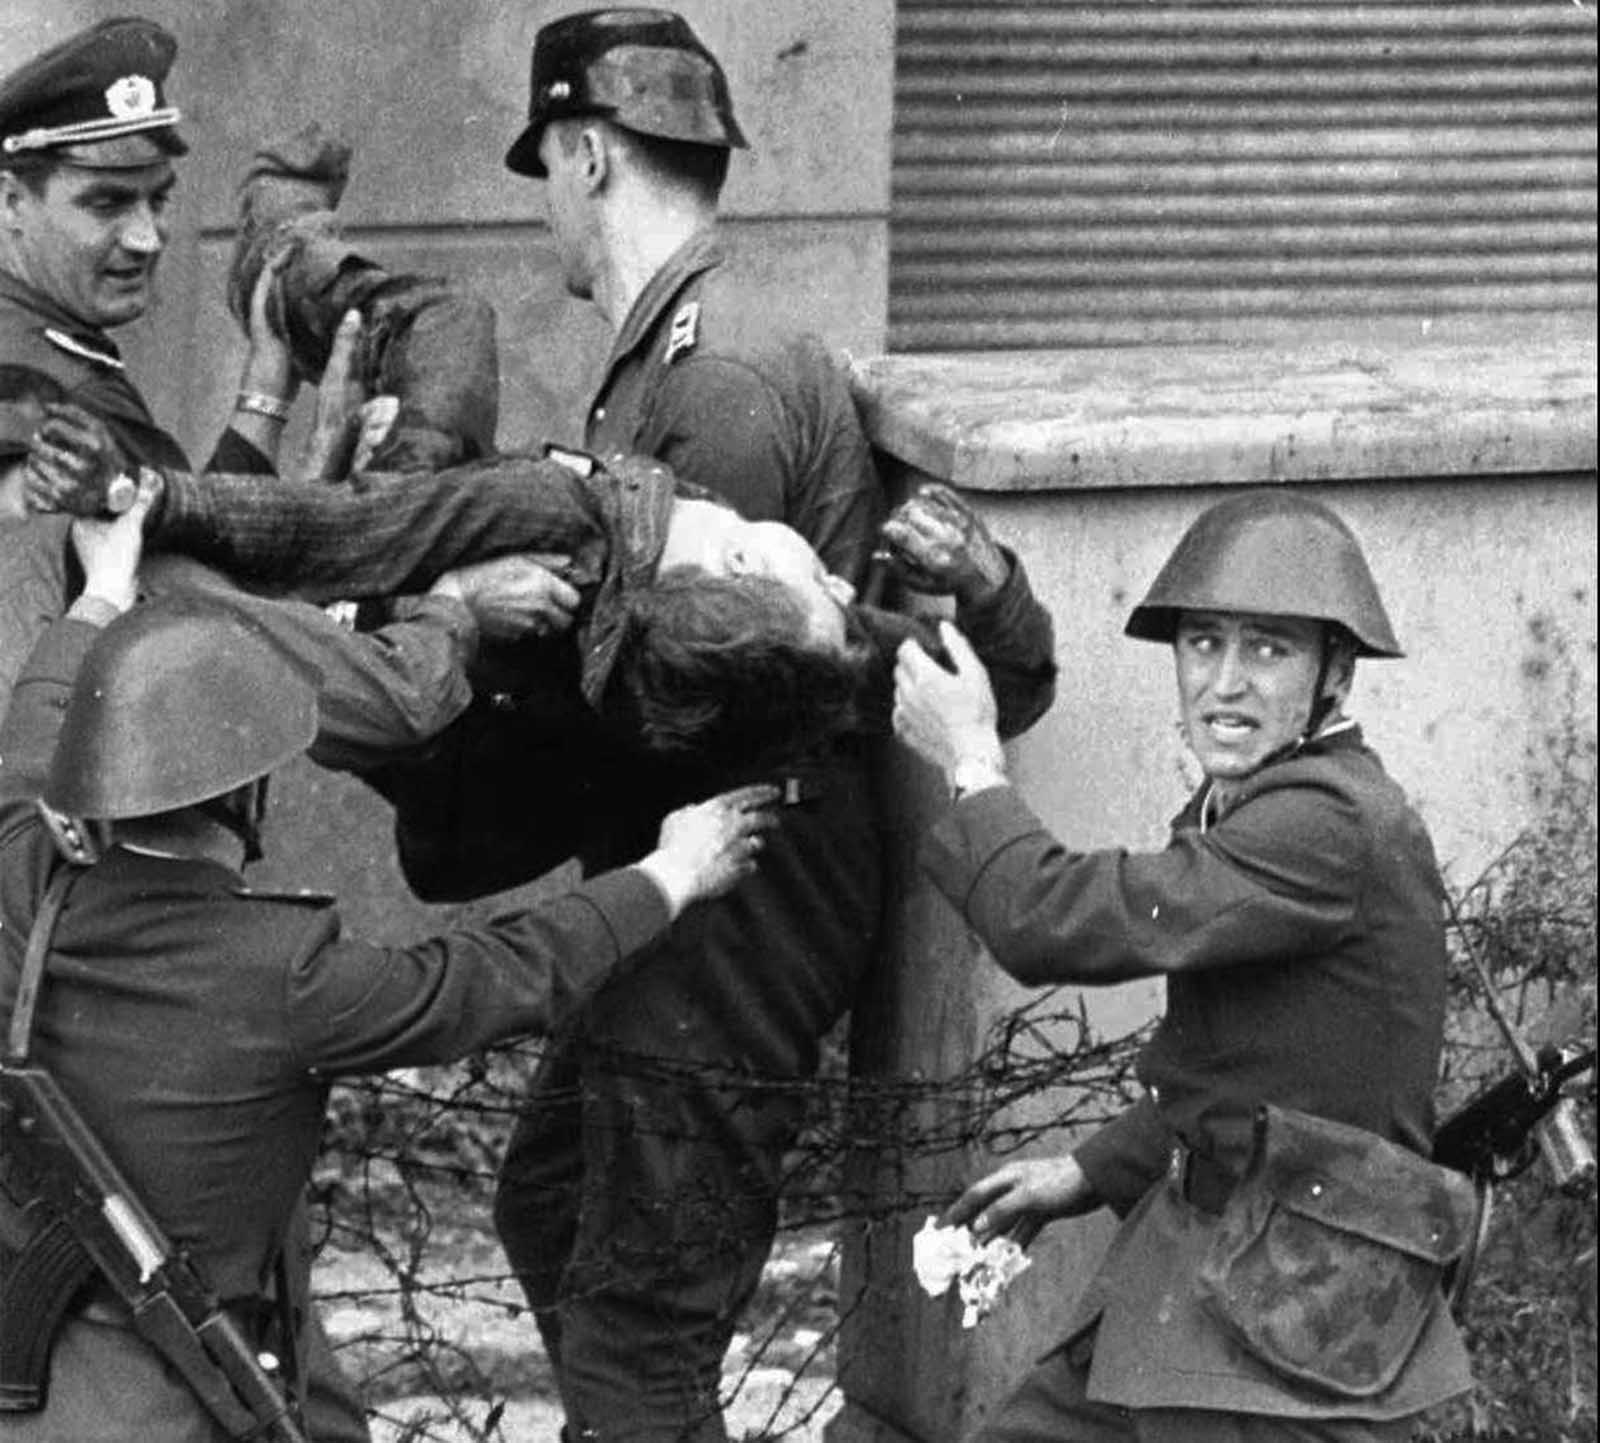 Dying Peter Fechter is carried away by East German border guards who shot him down when he tried to flee to the west in this August 17, 1962 photo. Fechter was lying 50 minutes in no-man's land before he was taken to a hospital where he died shortly after arrival.